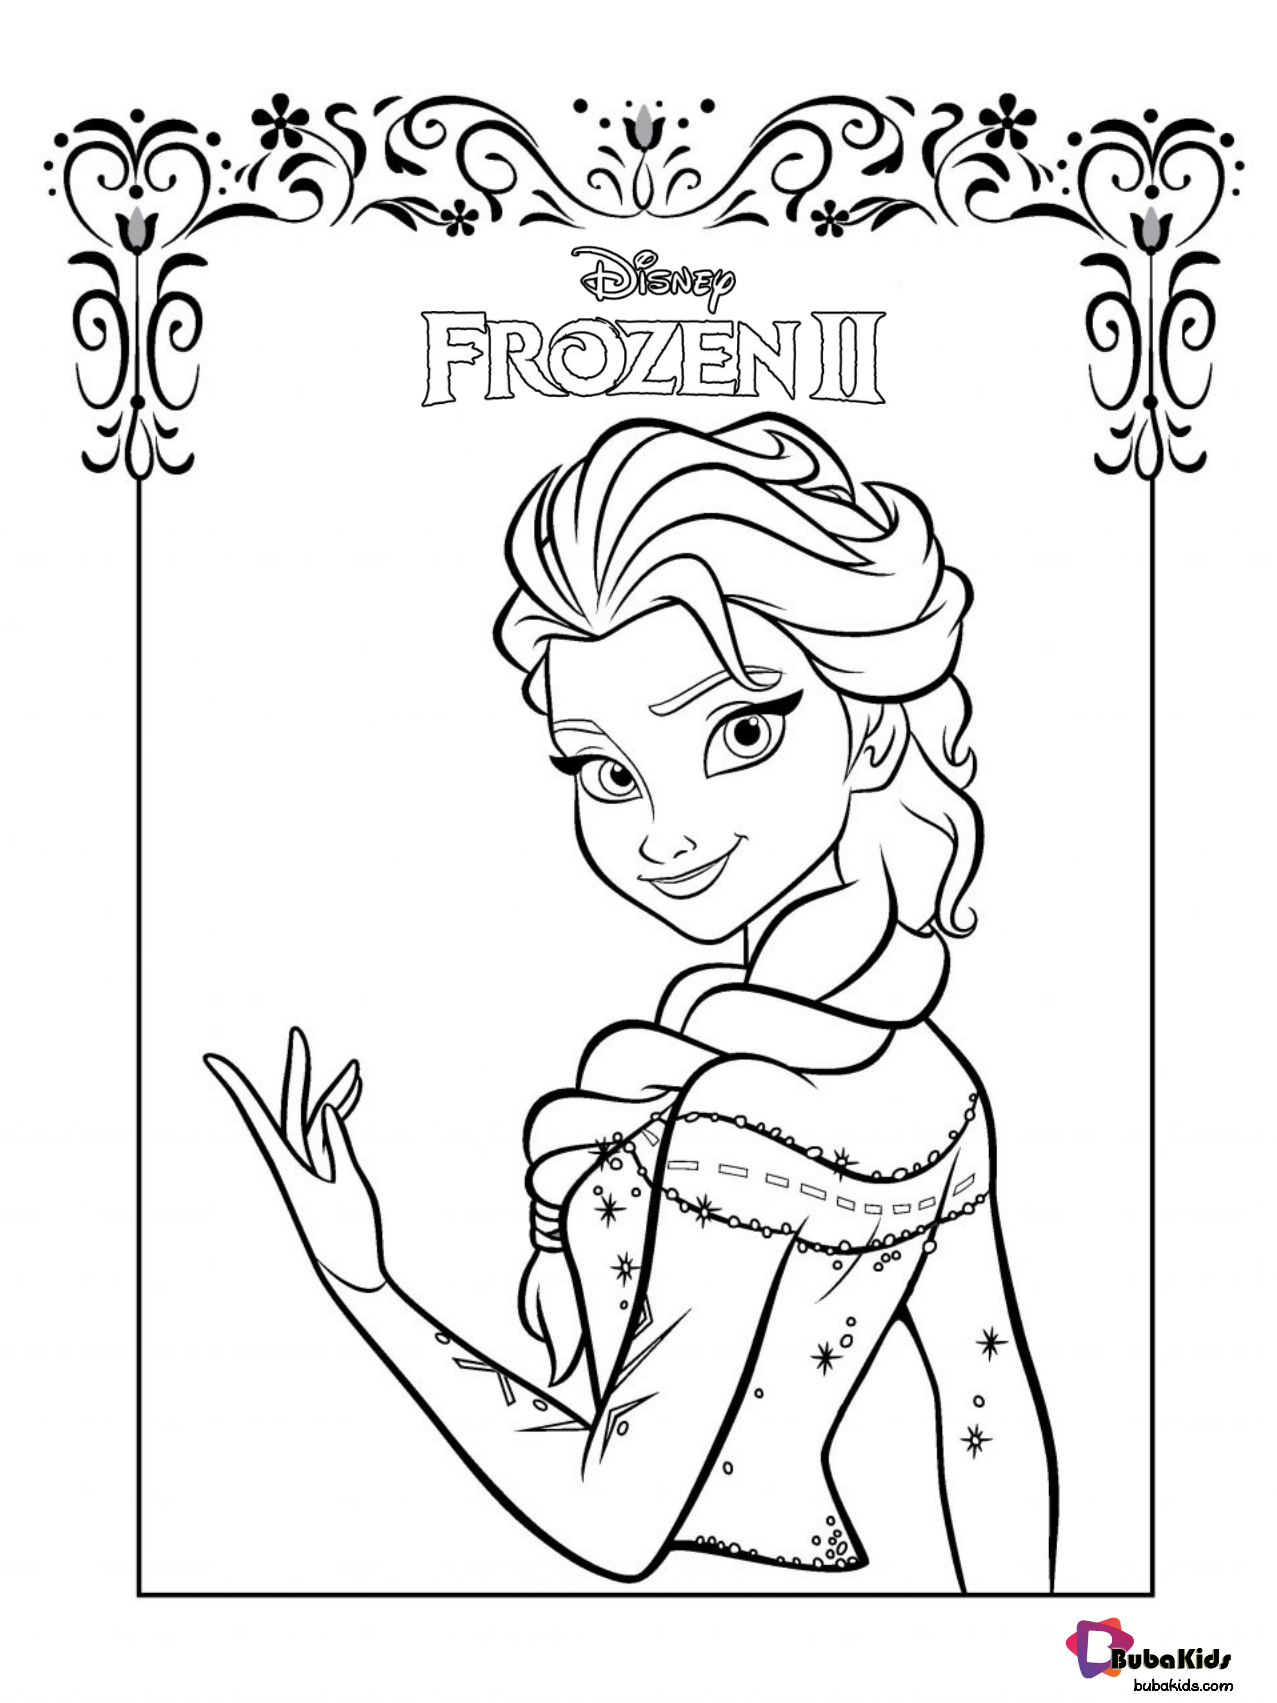 Frozen 2 Beautiful Queen Elsa Coloring Page Free Download And Printable Collection Of Cartoon Colo Frozen Coloring Pages Elsa Coloring Pages Frozen Coloring